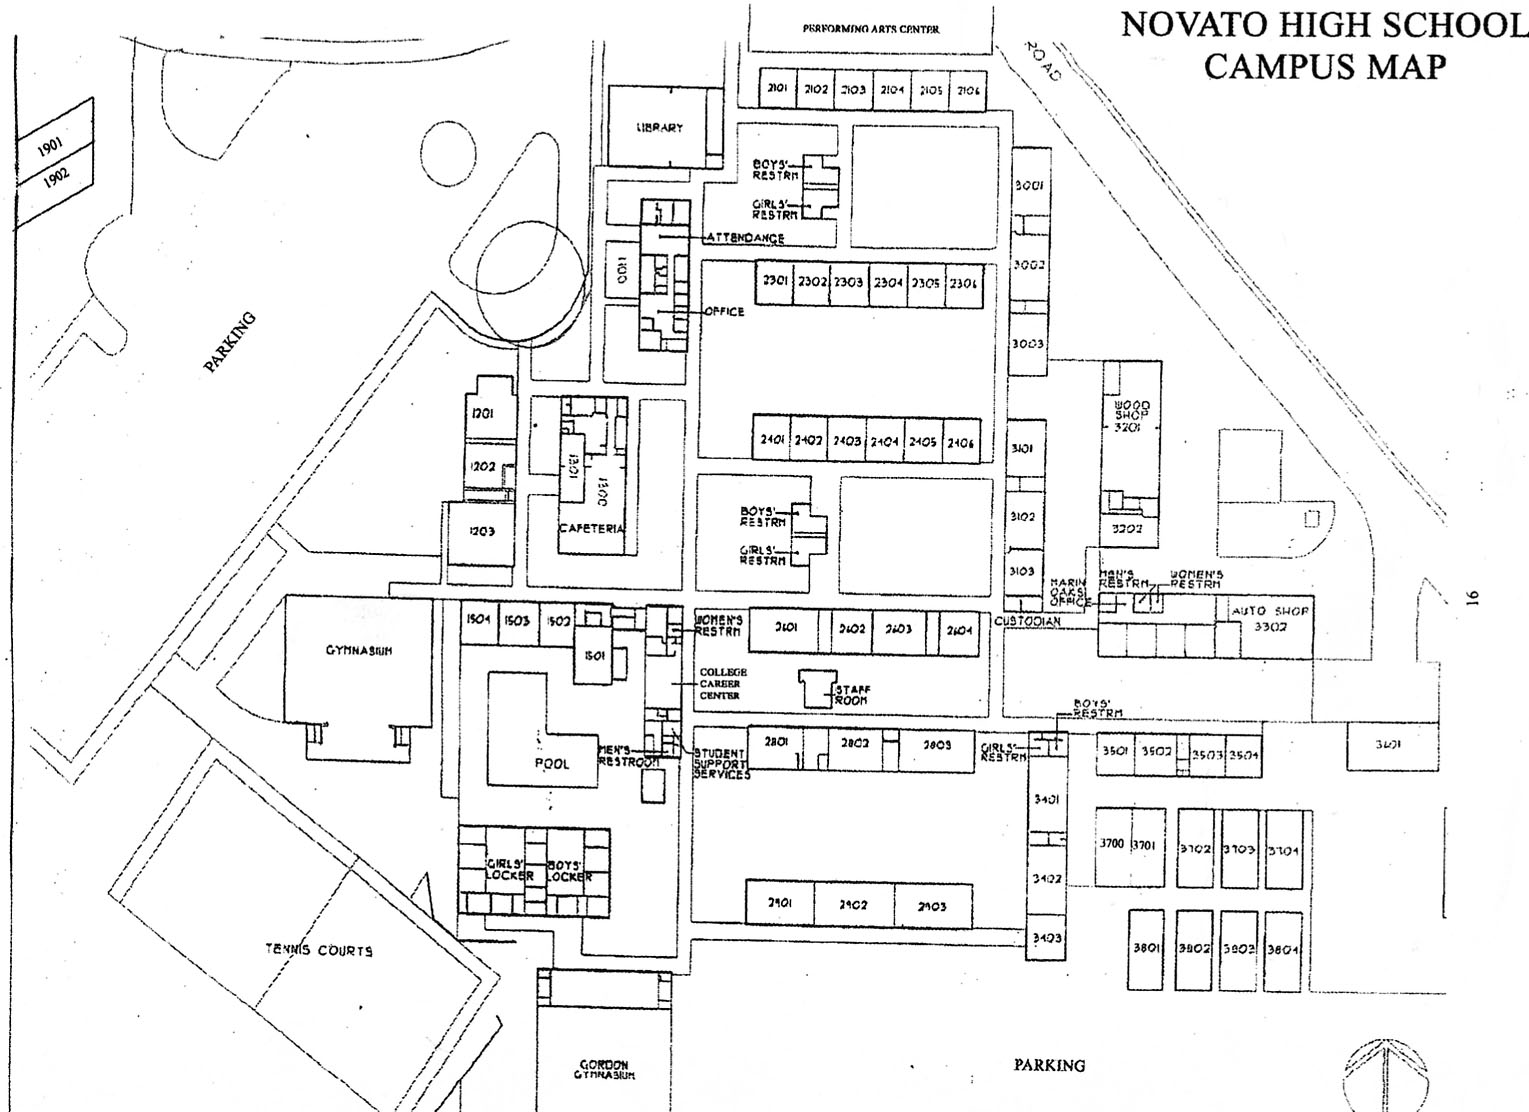 School Campus Map.Novato High School Campus Map Novato High School Novato Ca Mappery